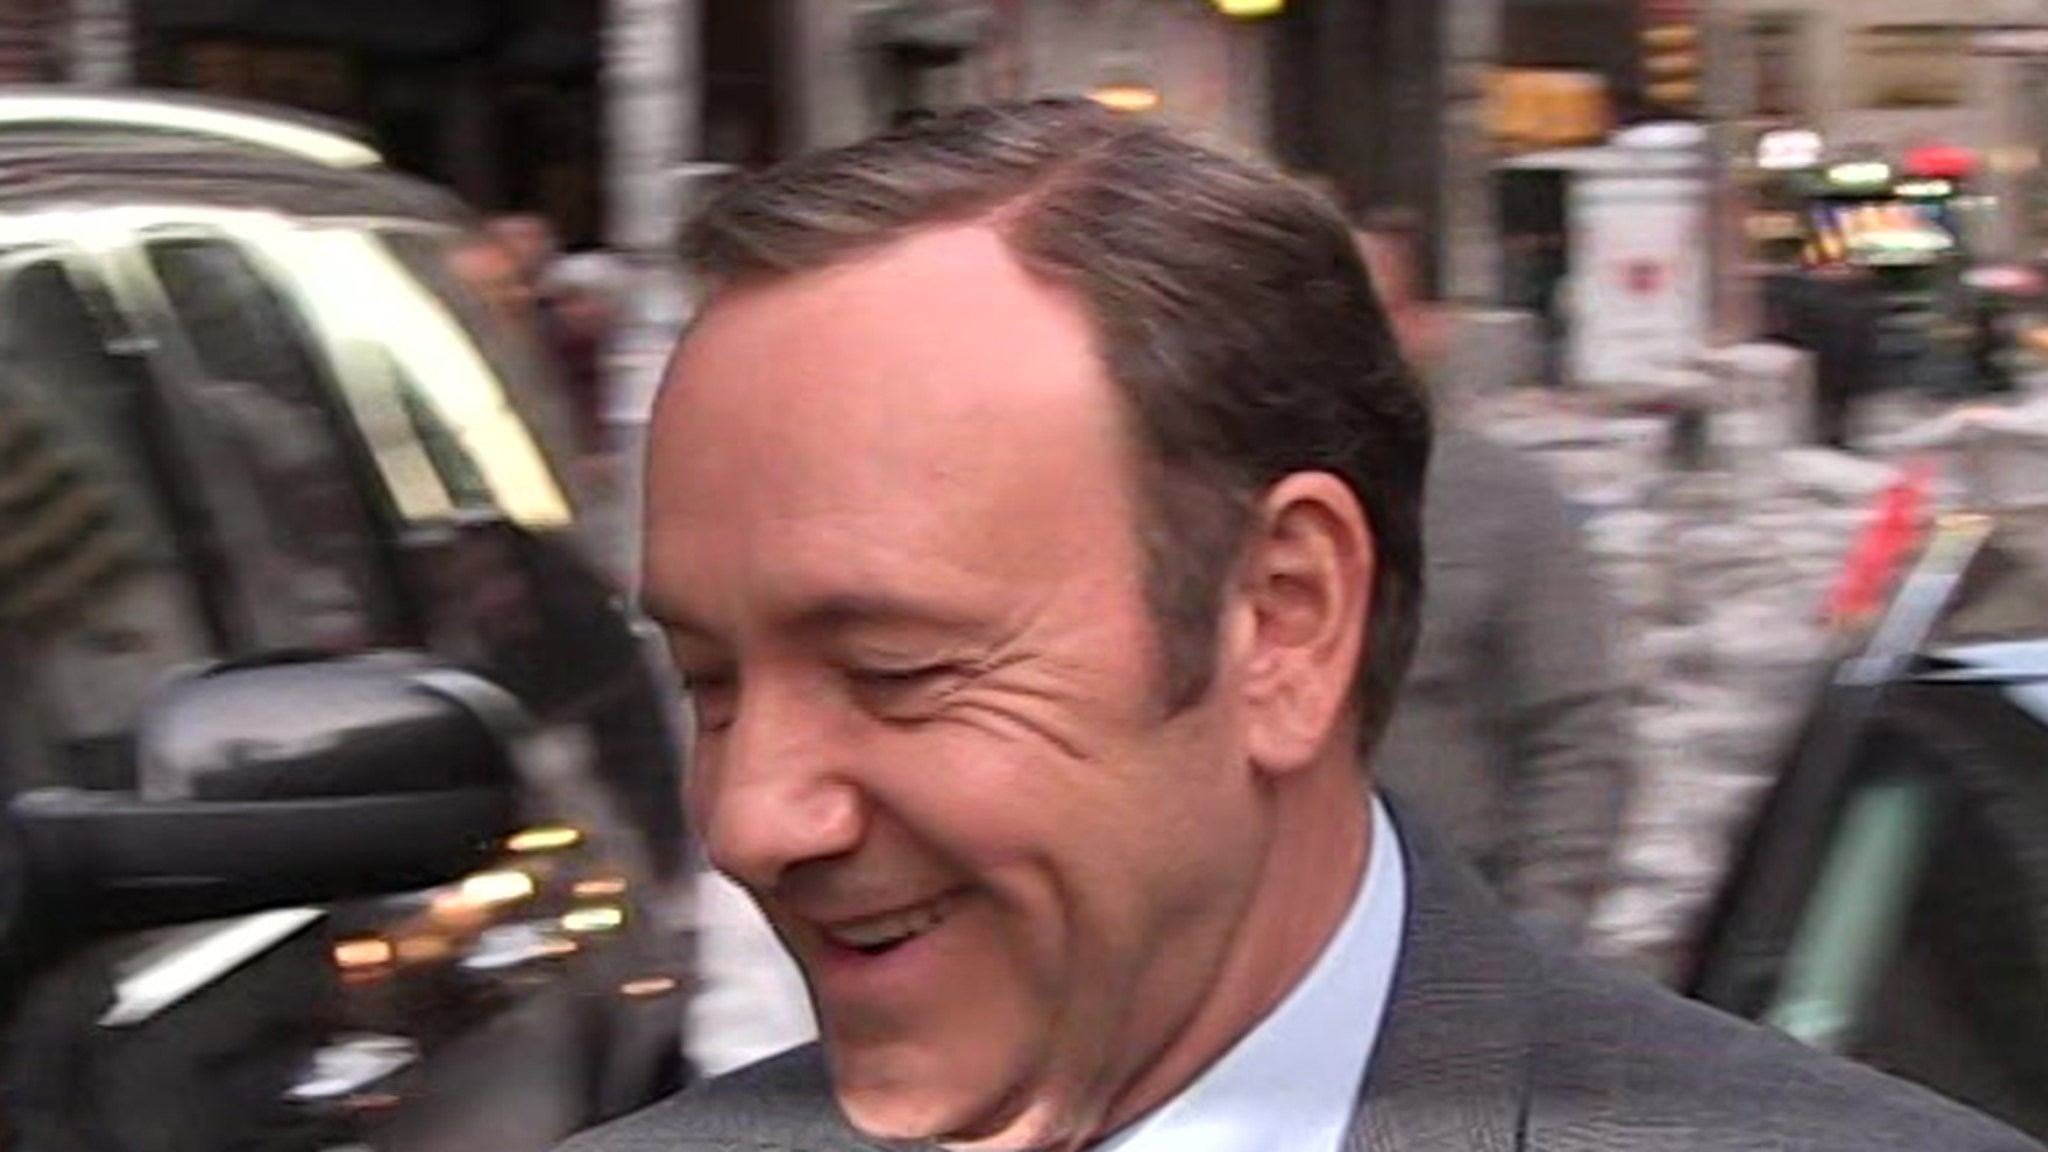 Kevin Spacey Books First Movie Role Since Scandal, Shooting in Italy